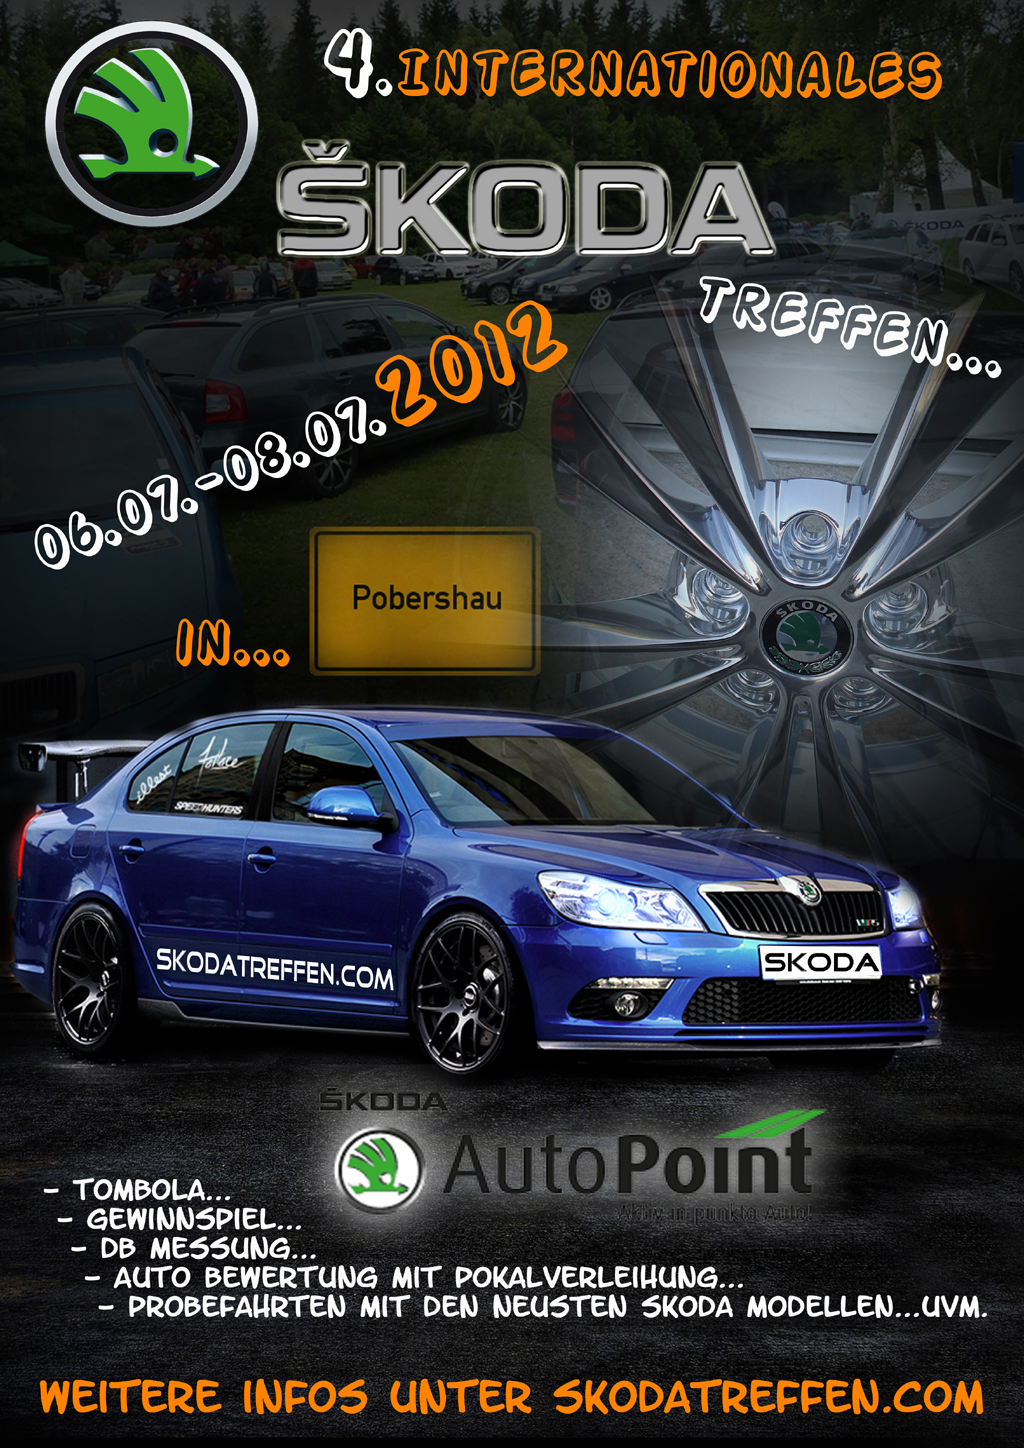 Update: 4. internationale Skoda Treffen vom 06.07. – 08.07.2012